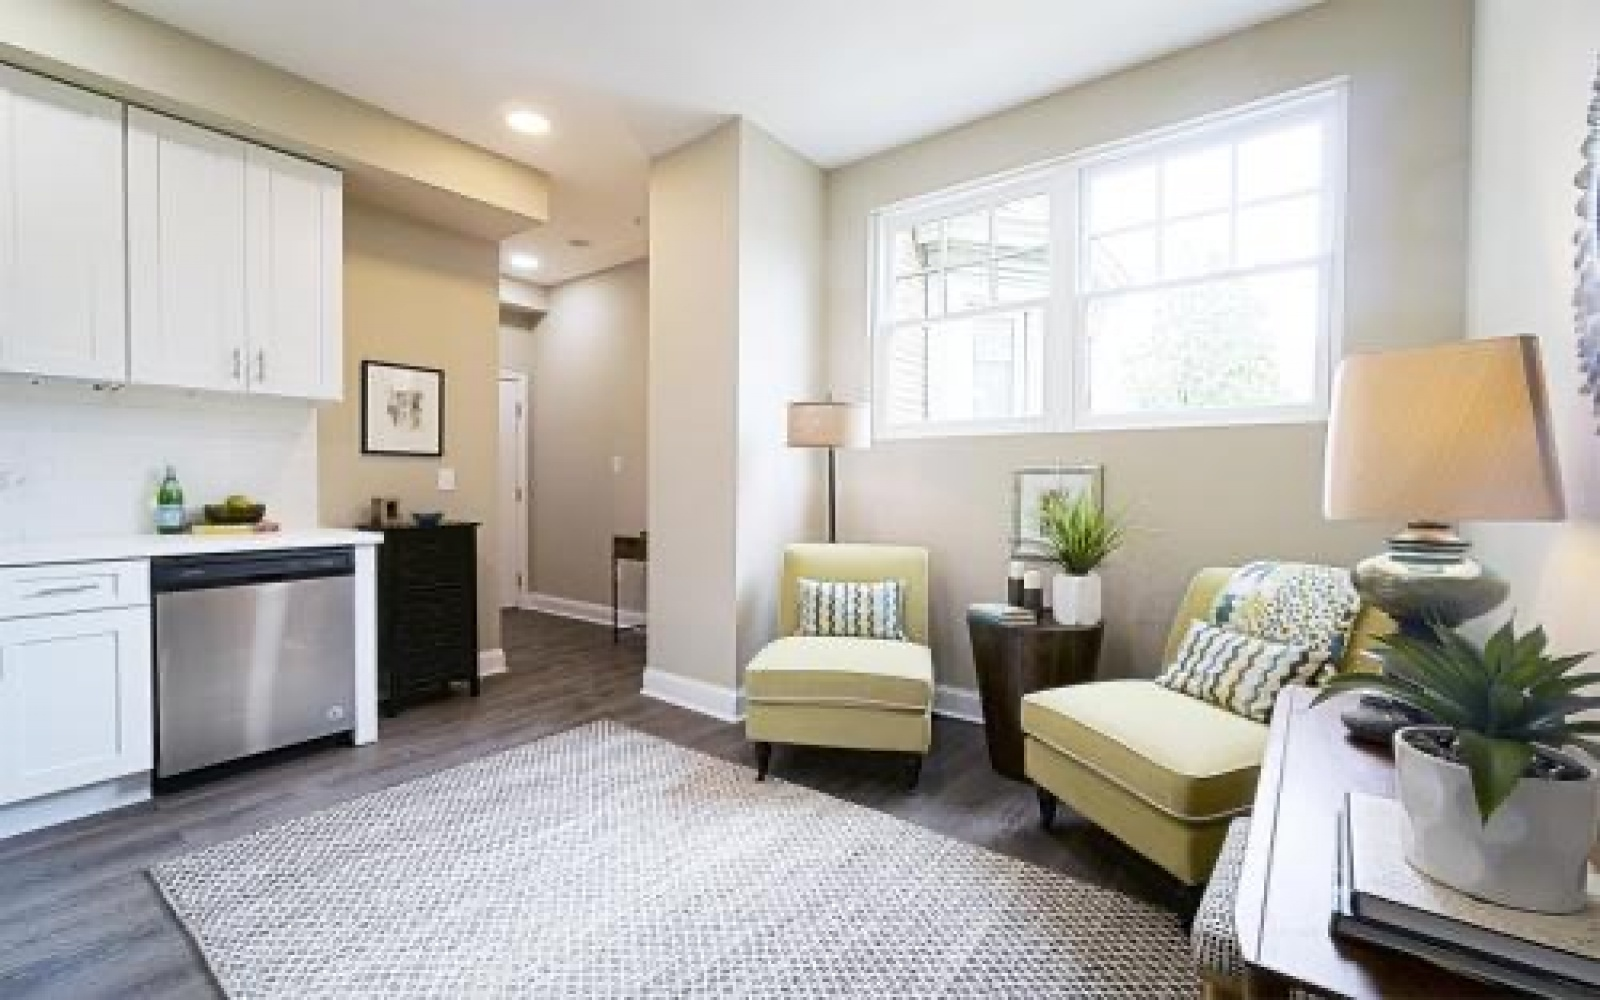 3120 16th St NW,Washington,District Of Columbia 20010,1 Bedroom Bedrooms,1 BathroomBathrooms,Apartment,16th St,1088